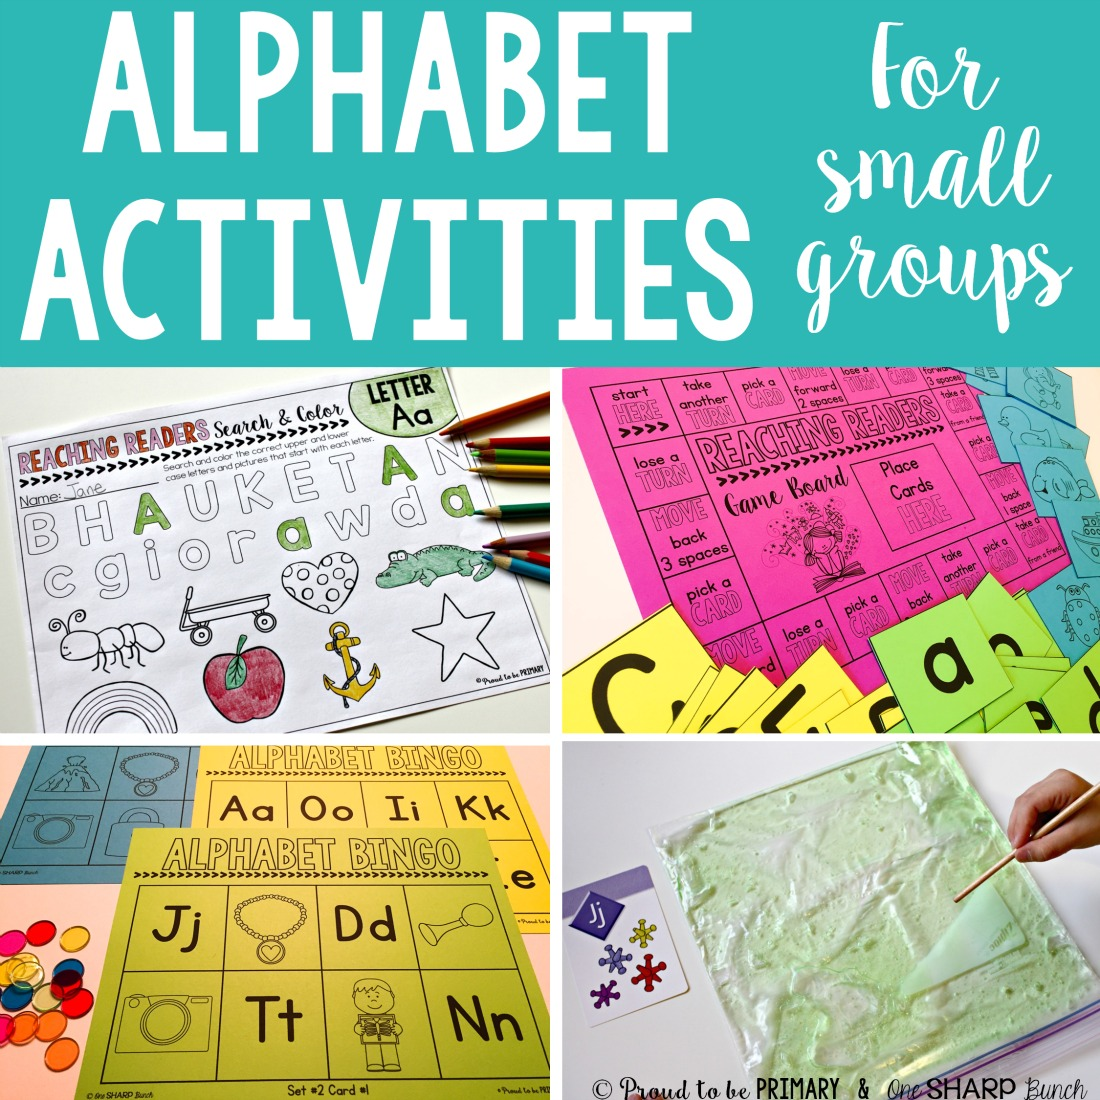 Physical Games & Activities for Groups - Wilderdom